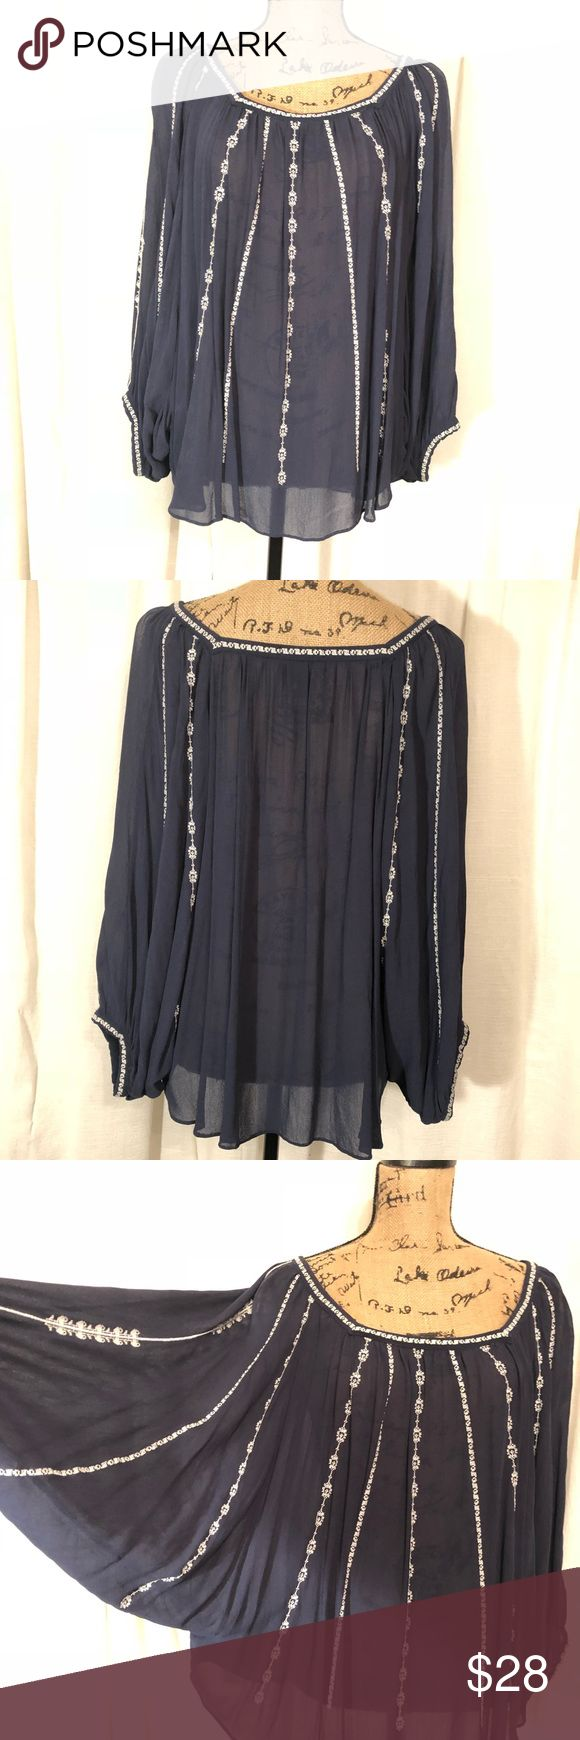 Lucky Brand batwing sleeves top Cute flowy top with batwing sleeves and white stitching NWOT Lucky Brand Tops